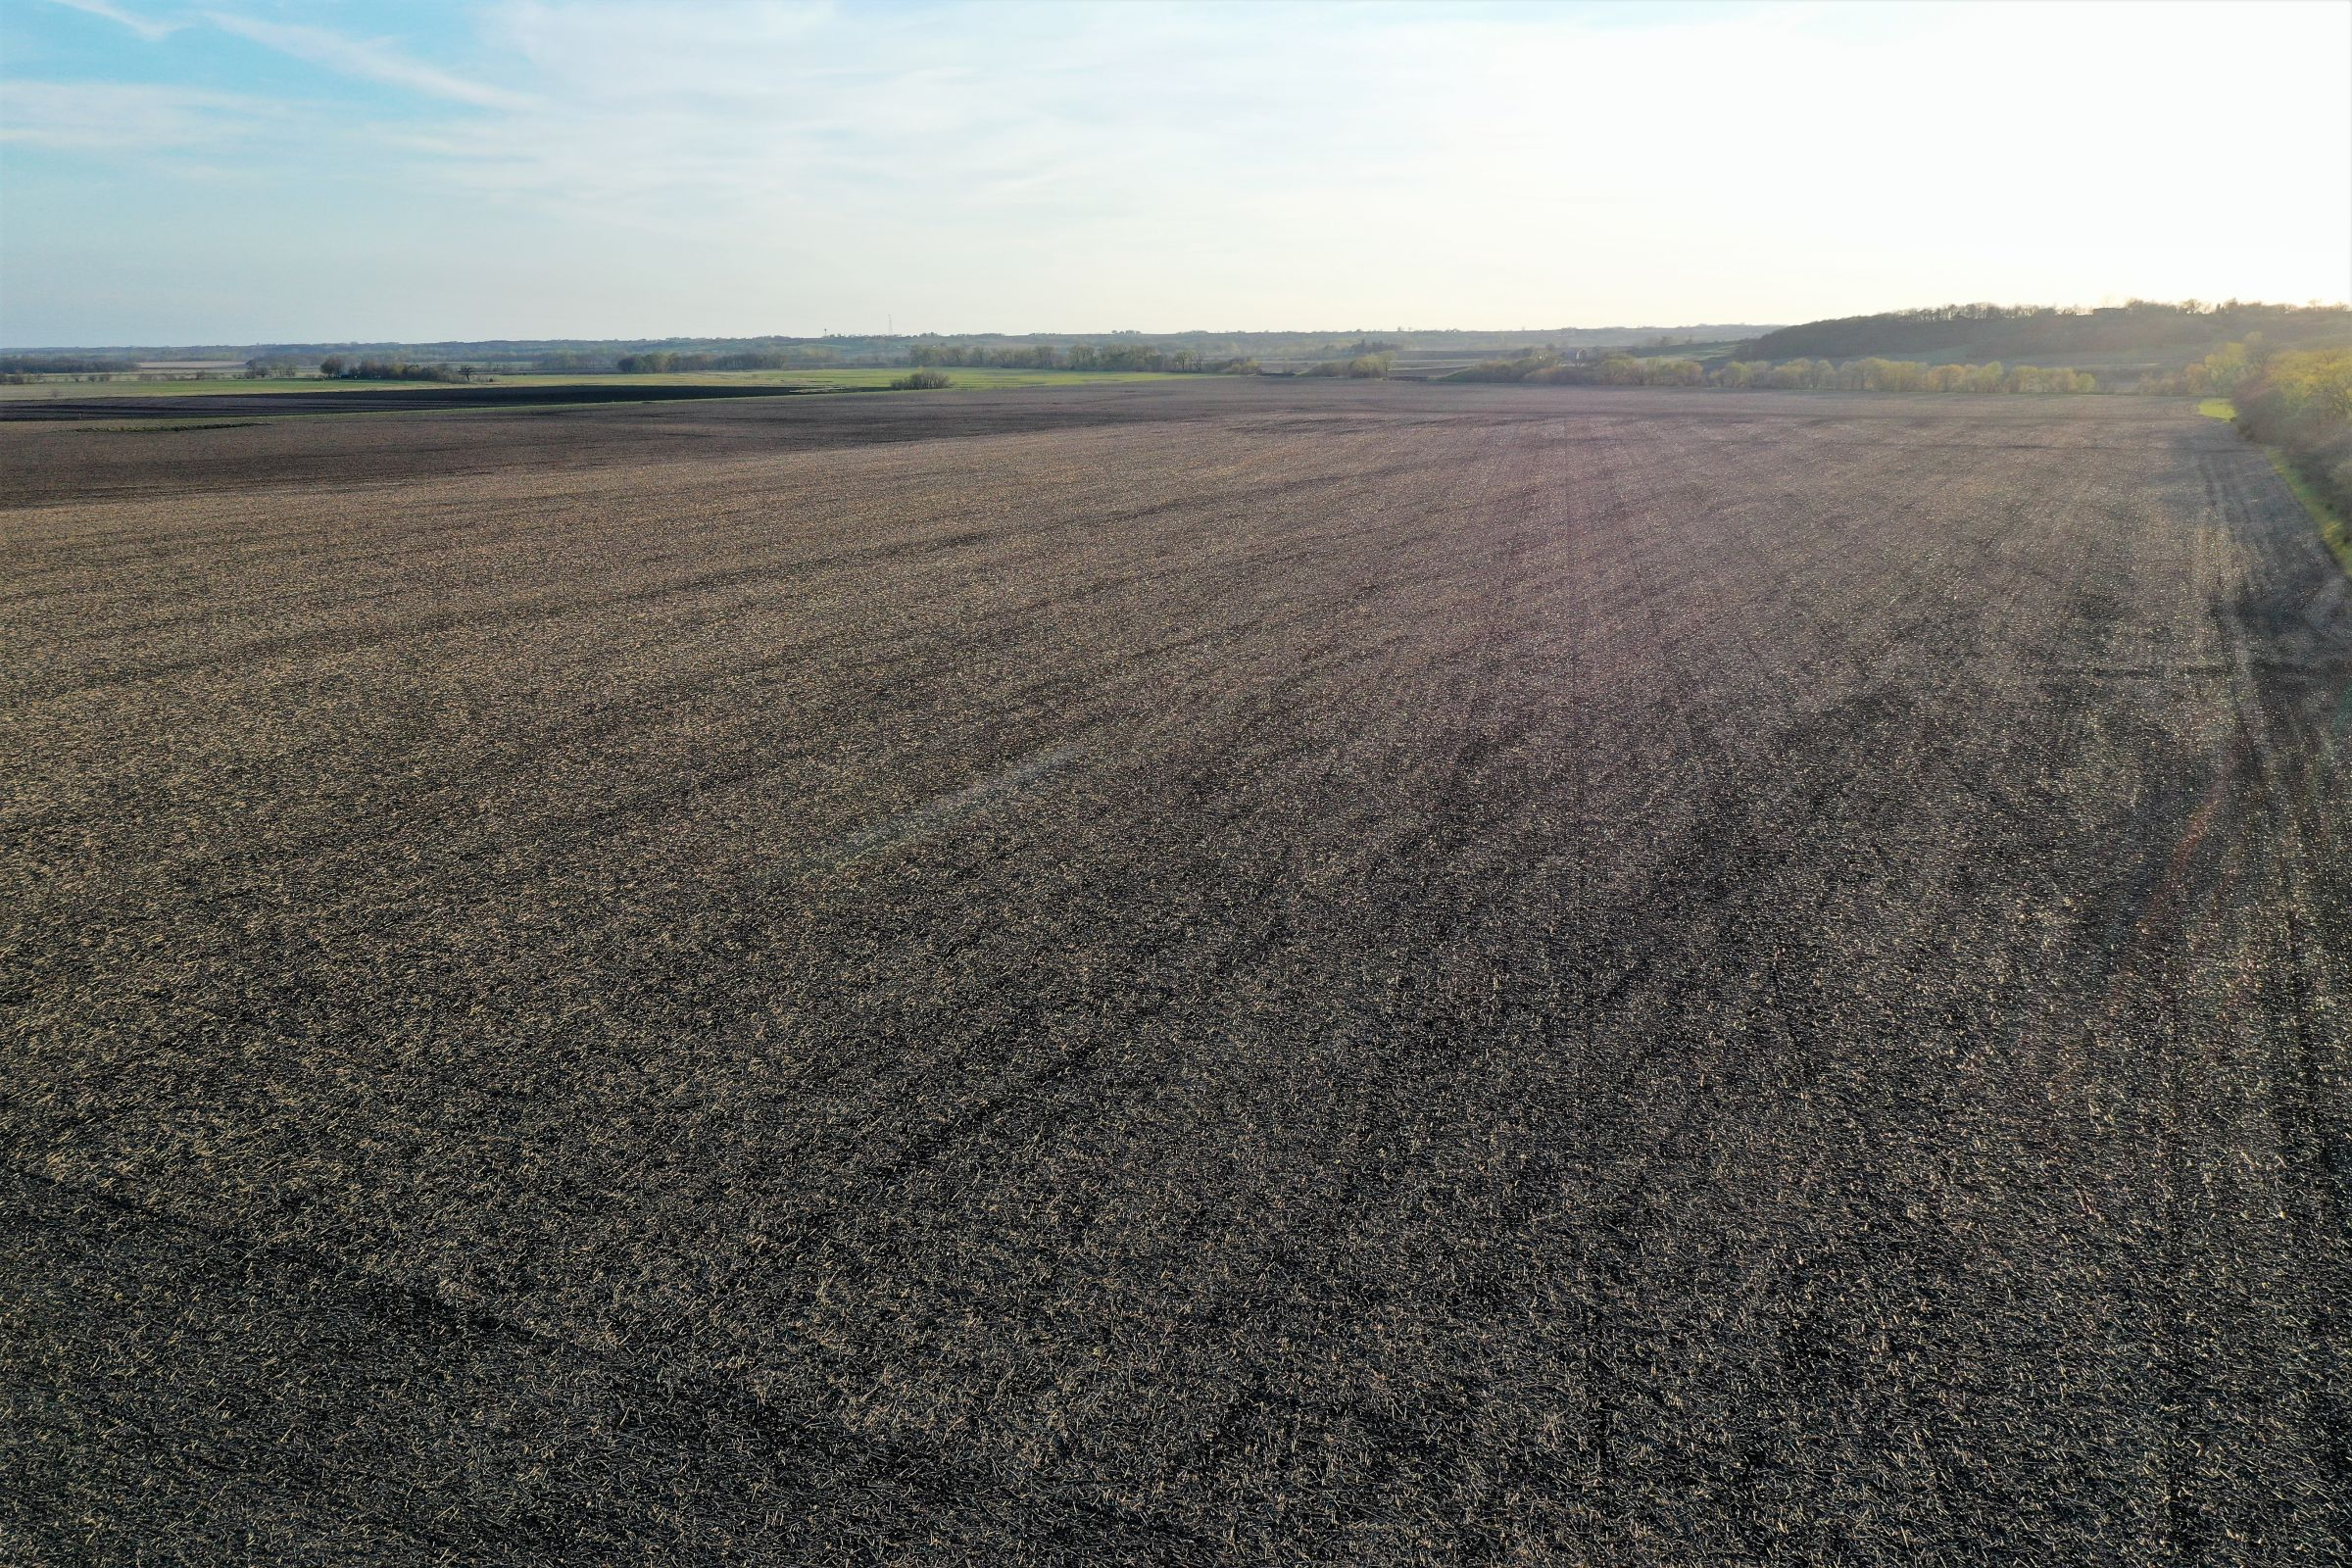 land-page-county-iowa-160-acres-listing-number-14980-5-2020-04-28-172841.jpg